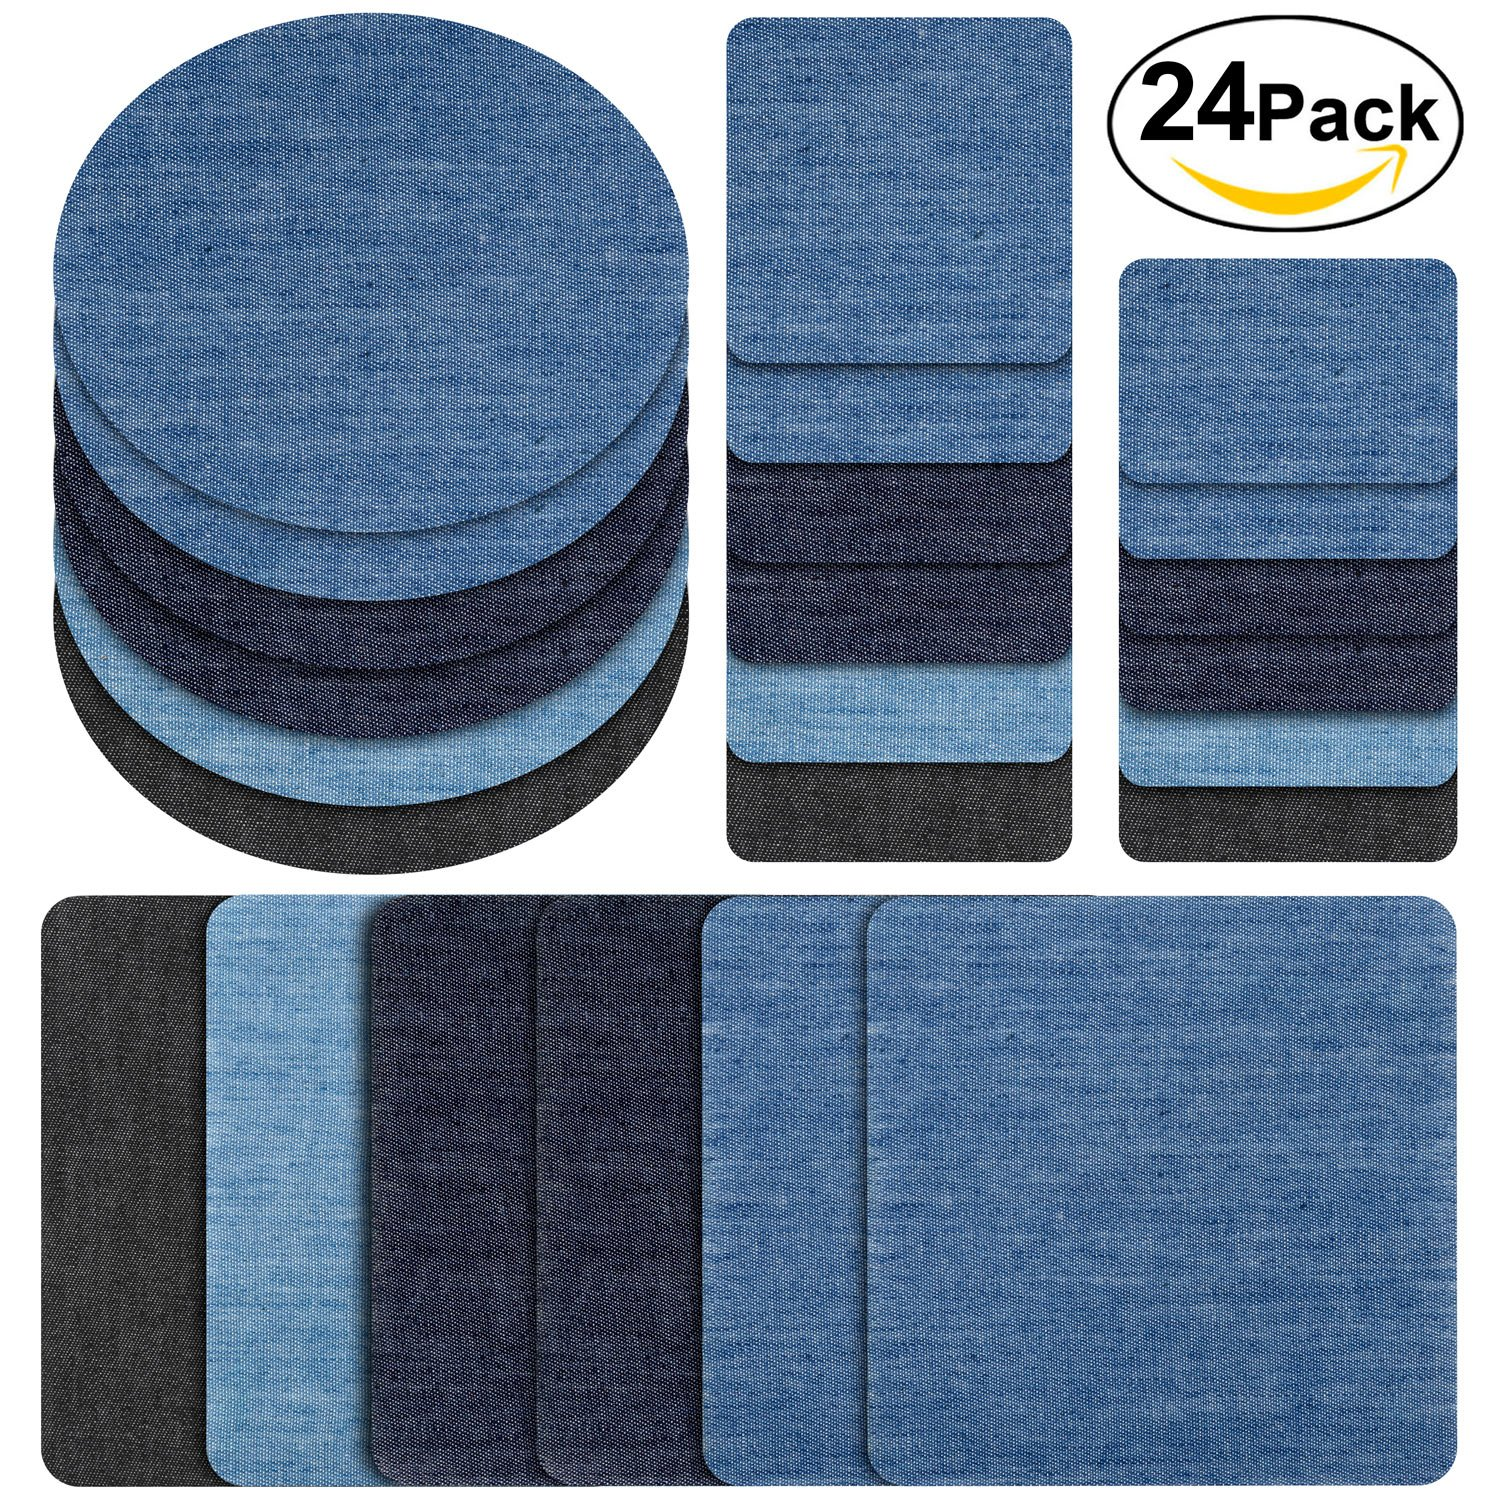 Denim iron on patches for jeans, Iron on denim patches large, Patches for clothing repair, Yosemy 24pcs Strongest iron on denim jean patches inside ,6 Colors